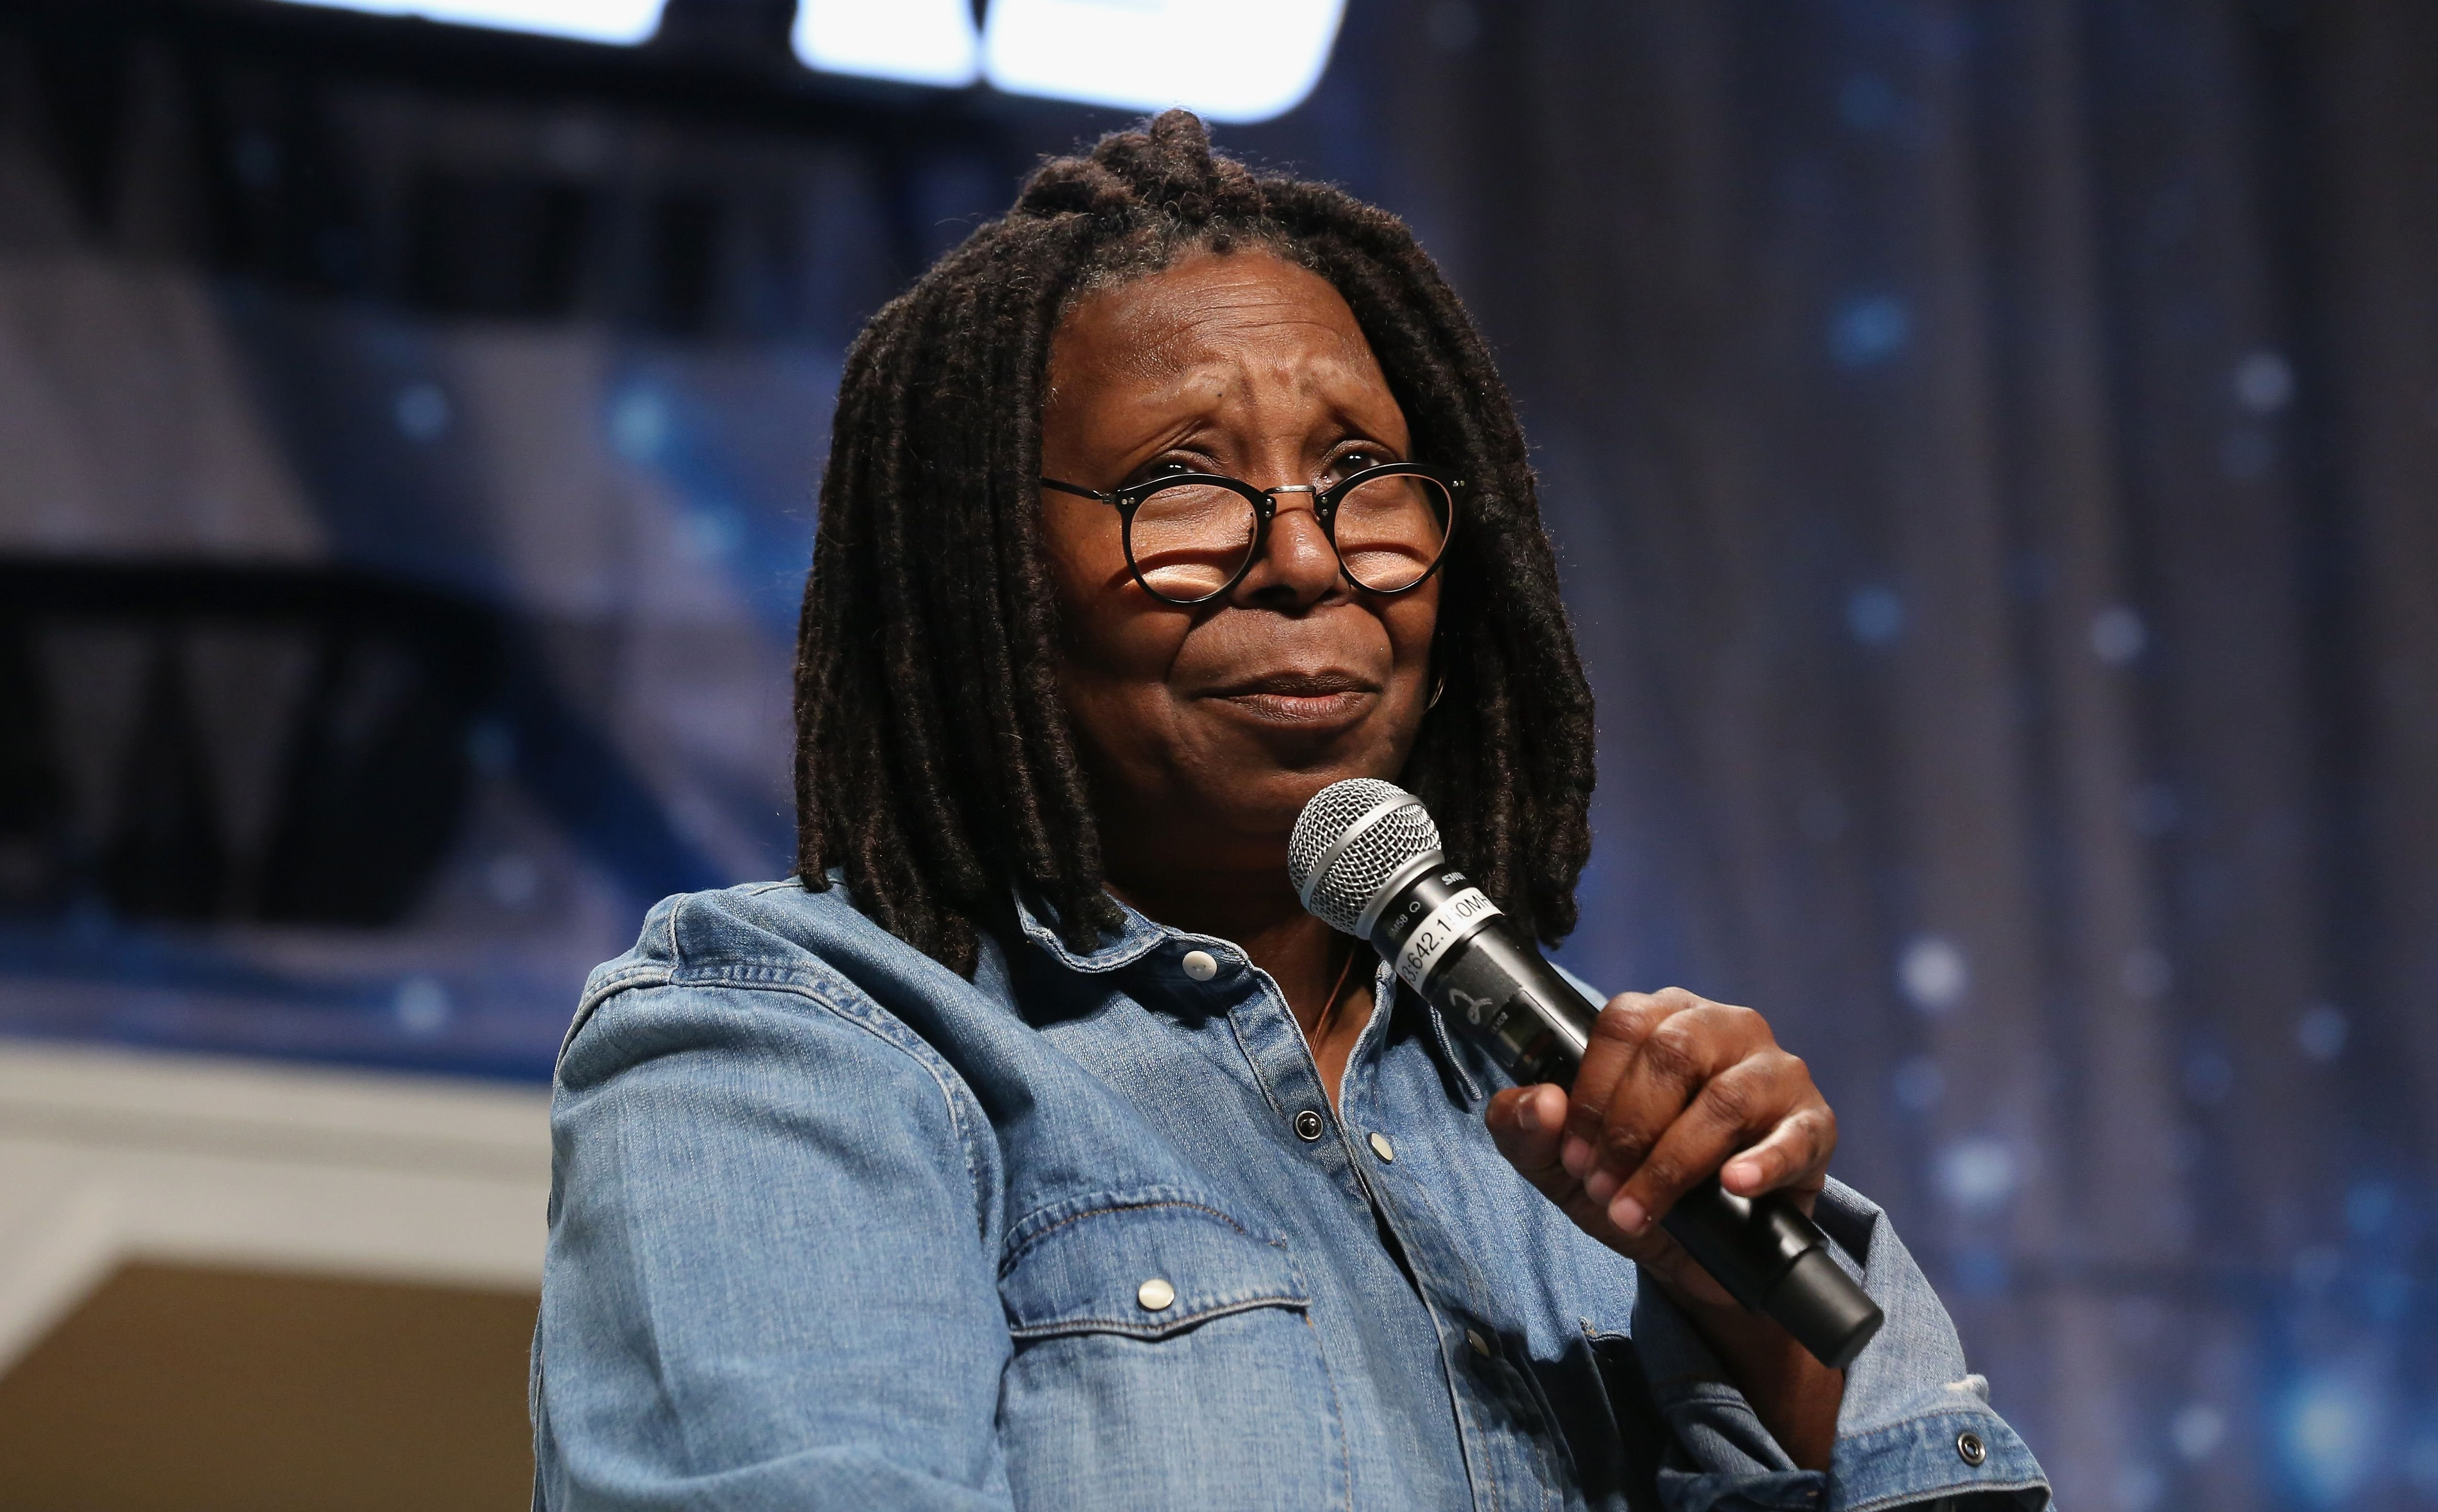 Whoopi Goldberg at the 15th annual official Star Trek convention on Aug. 4, 2016 | Photo: Getty Images